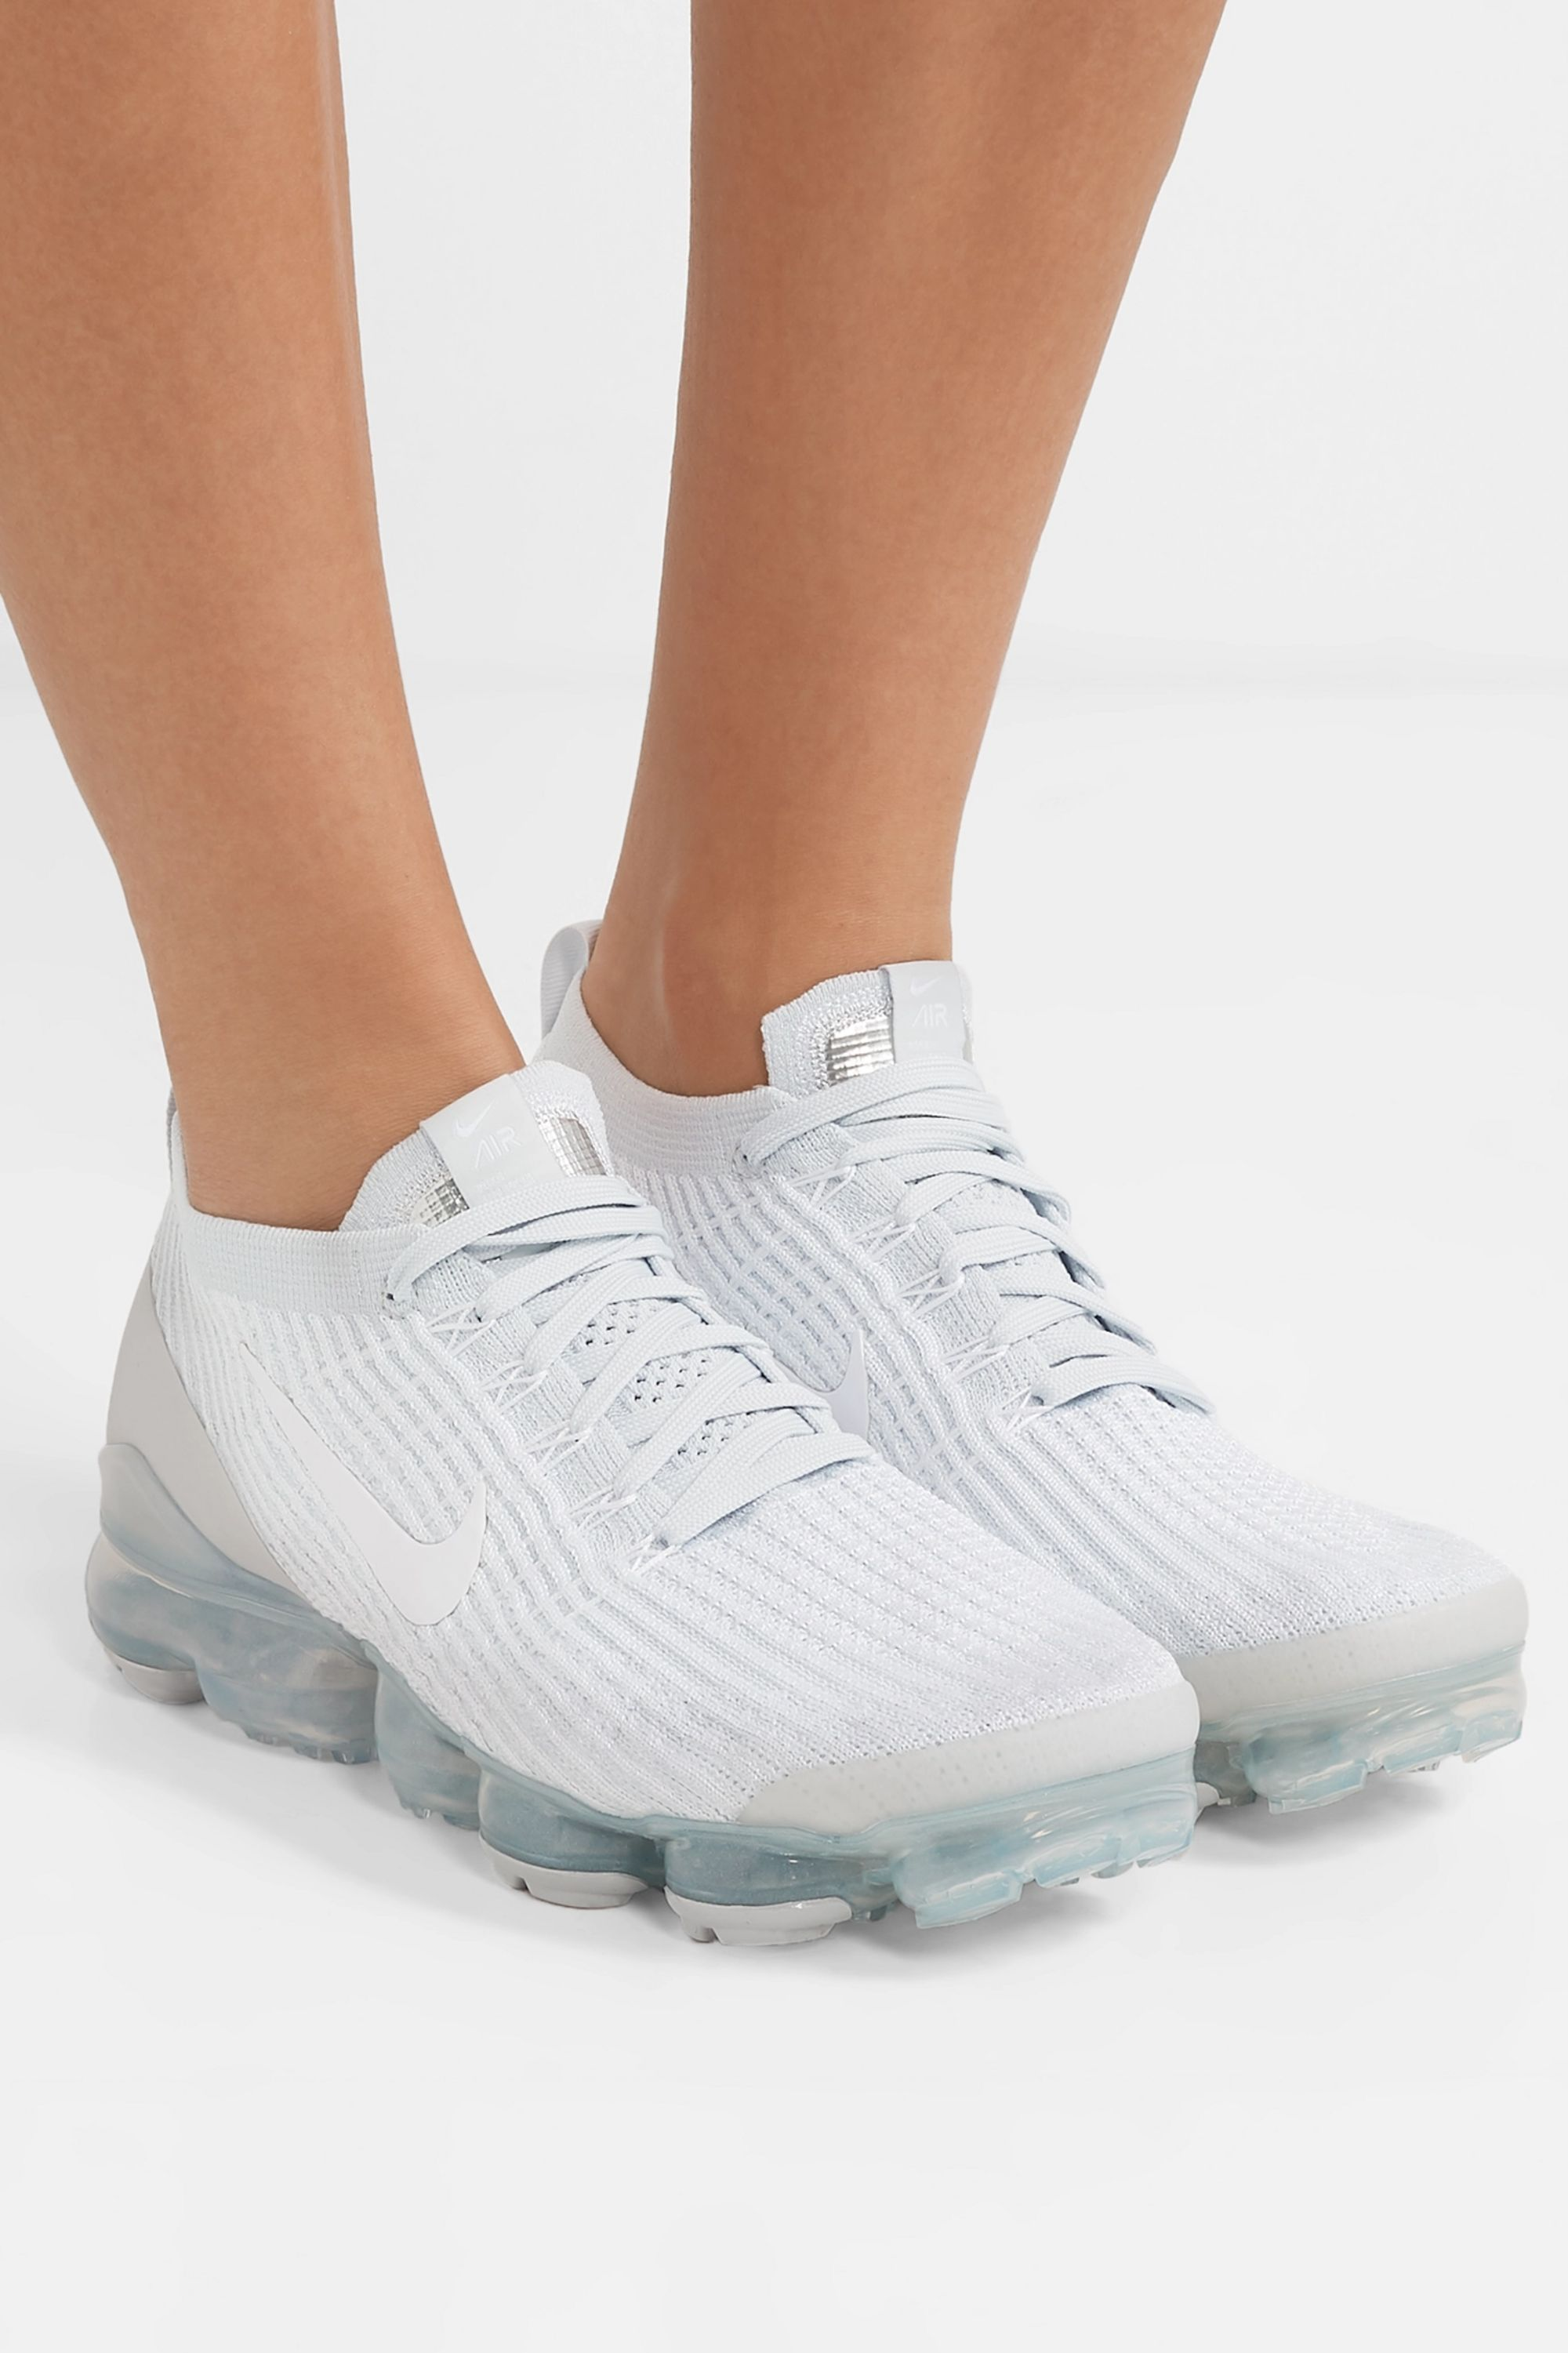 realce Respetuoso del medio ambiente Adulto  white flyknit vapormax Shop Clothing & Shoes Online